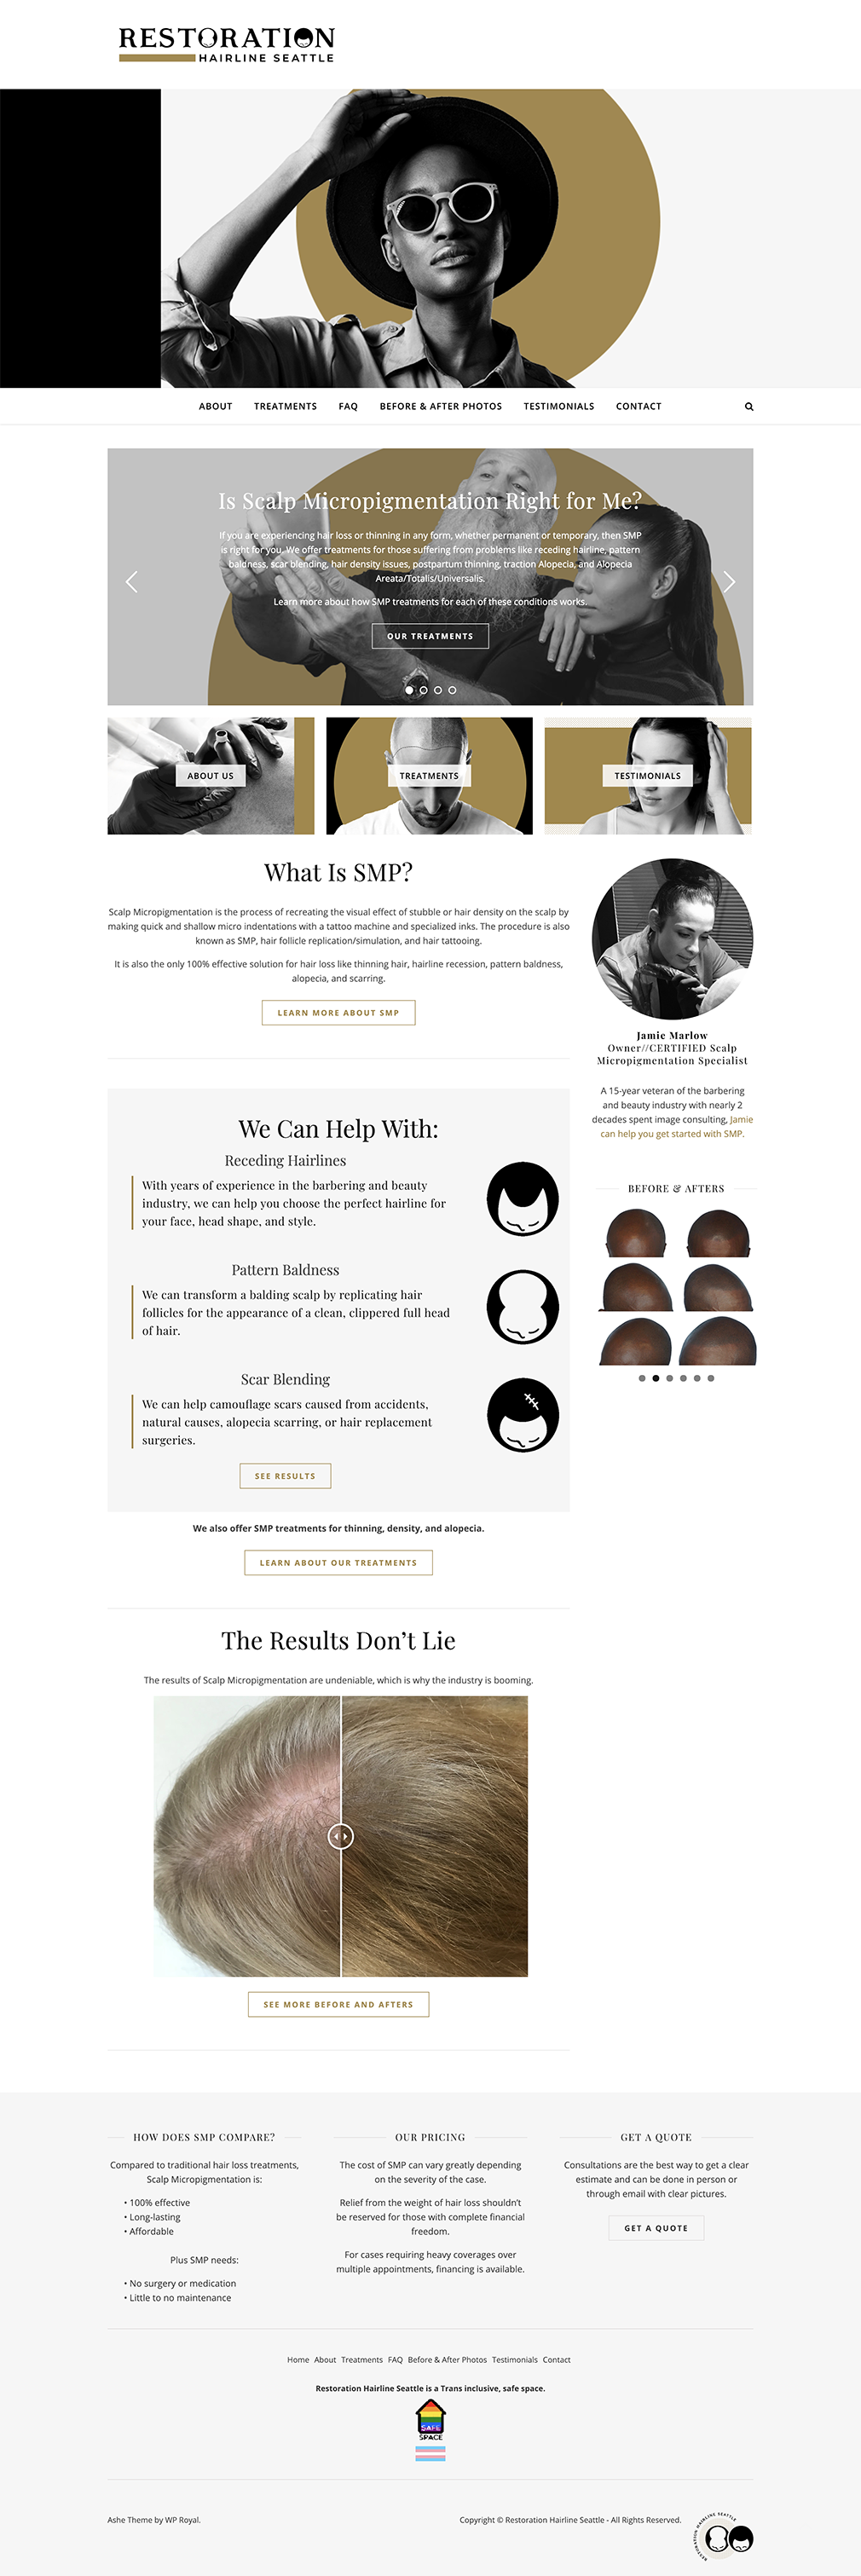 Restoration Hairline Seattle Homepage